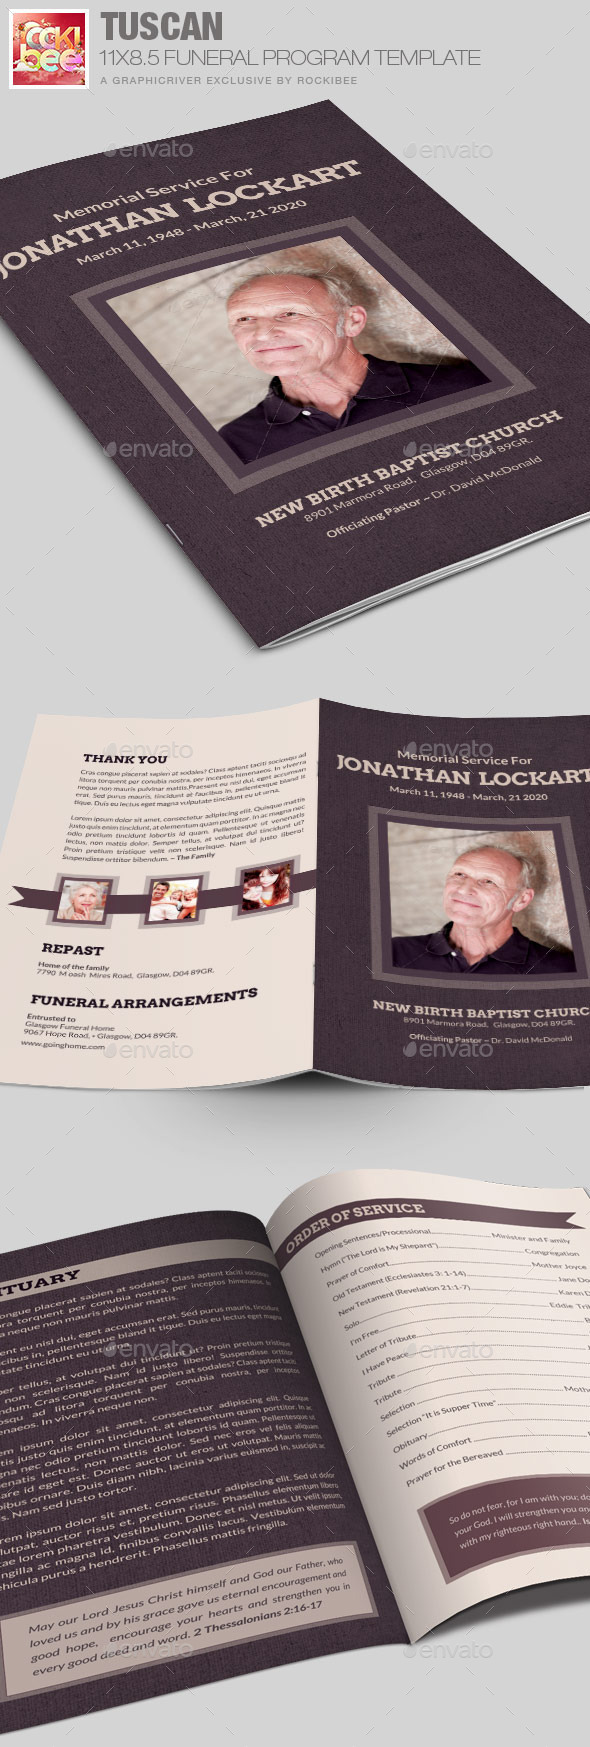 Tuscan Funeral Program Template - Informational Brochures